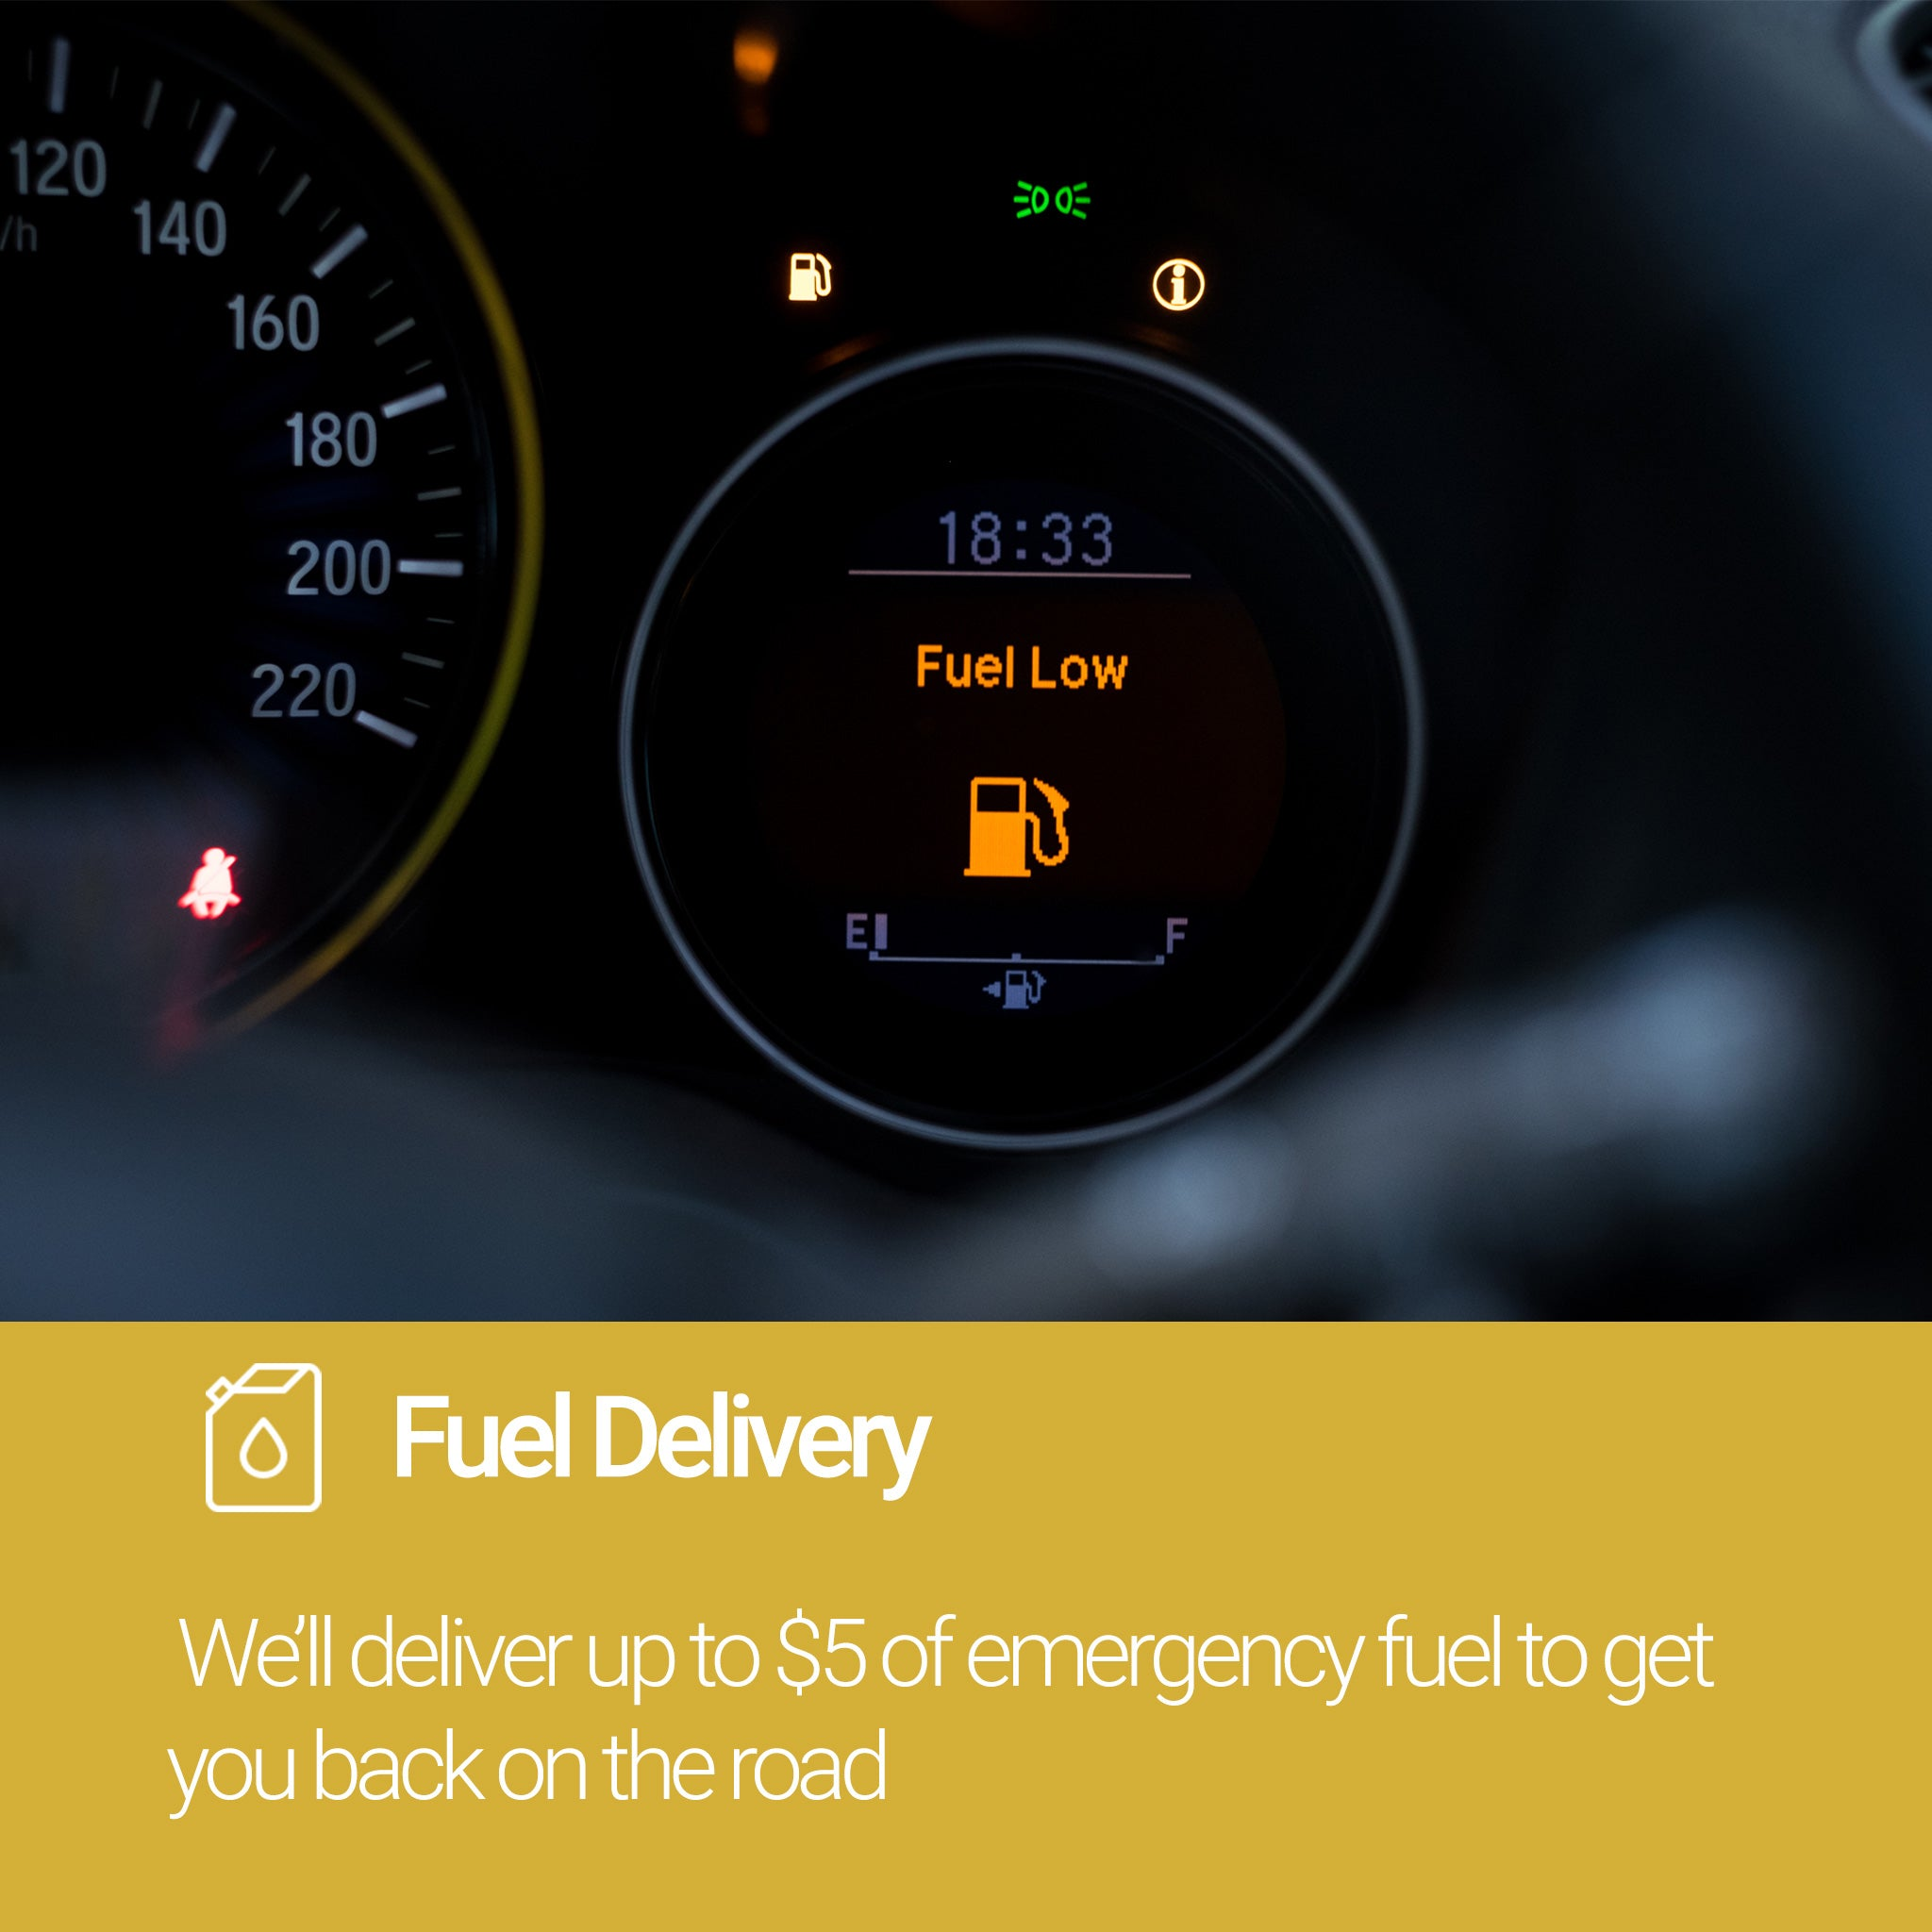 Roadside Assistance Gold Plan Fuel Delivery Service